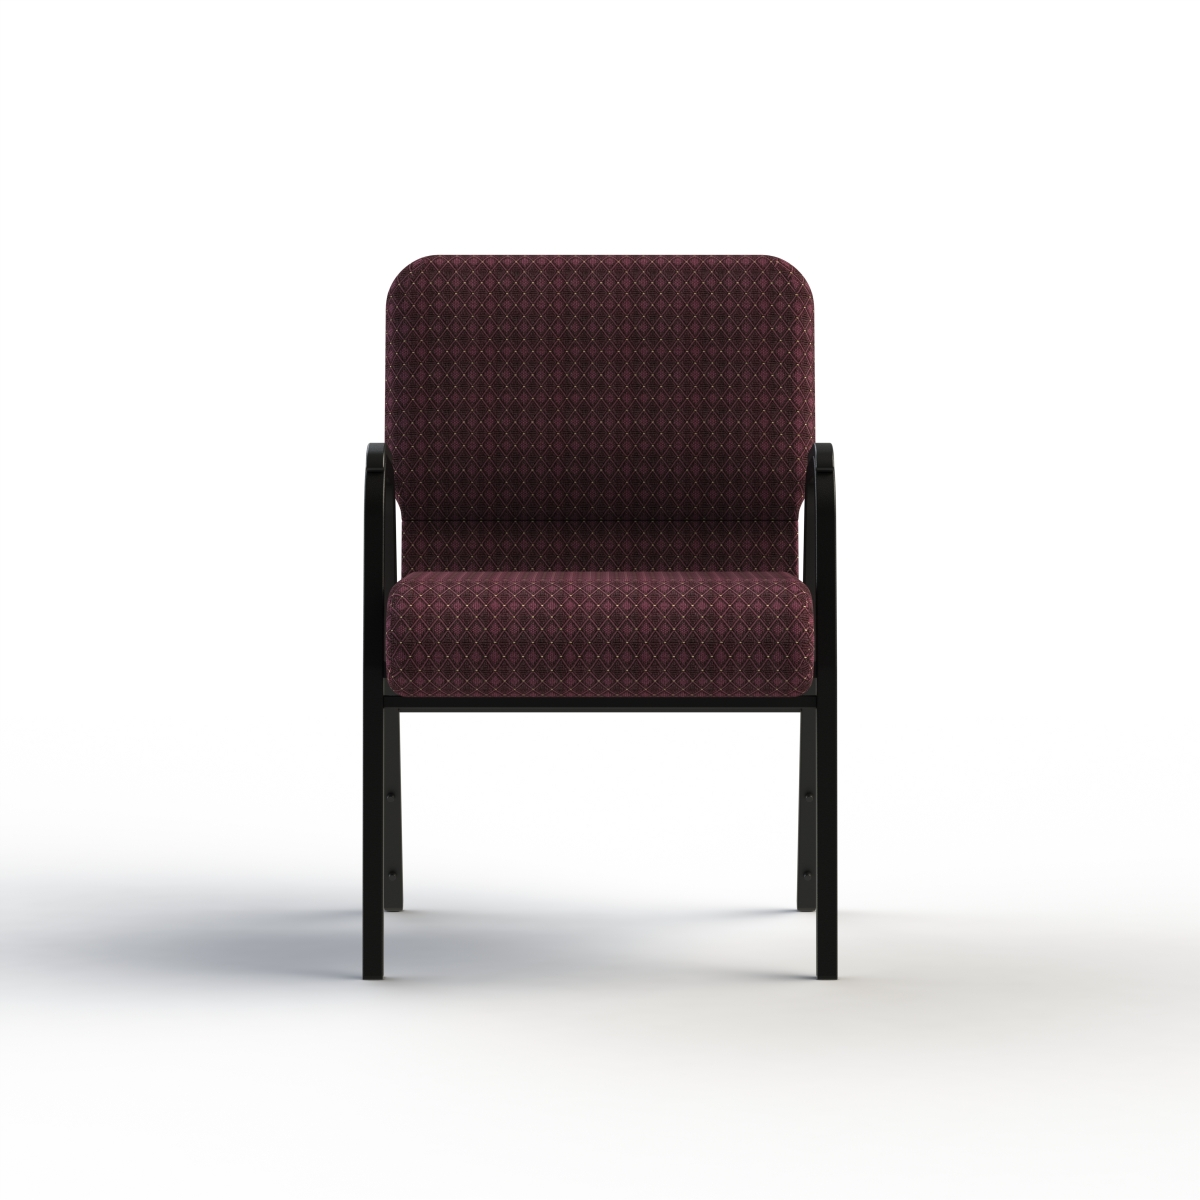 ... Cornerstone Chair With Arms Front View ...